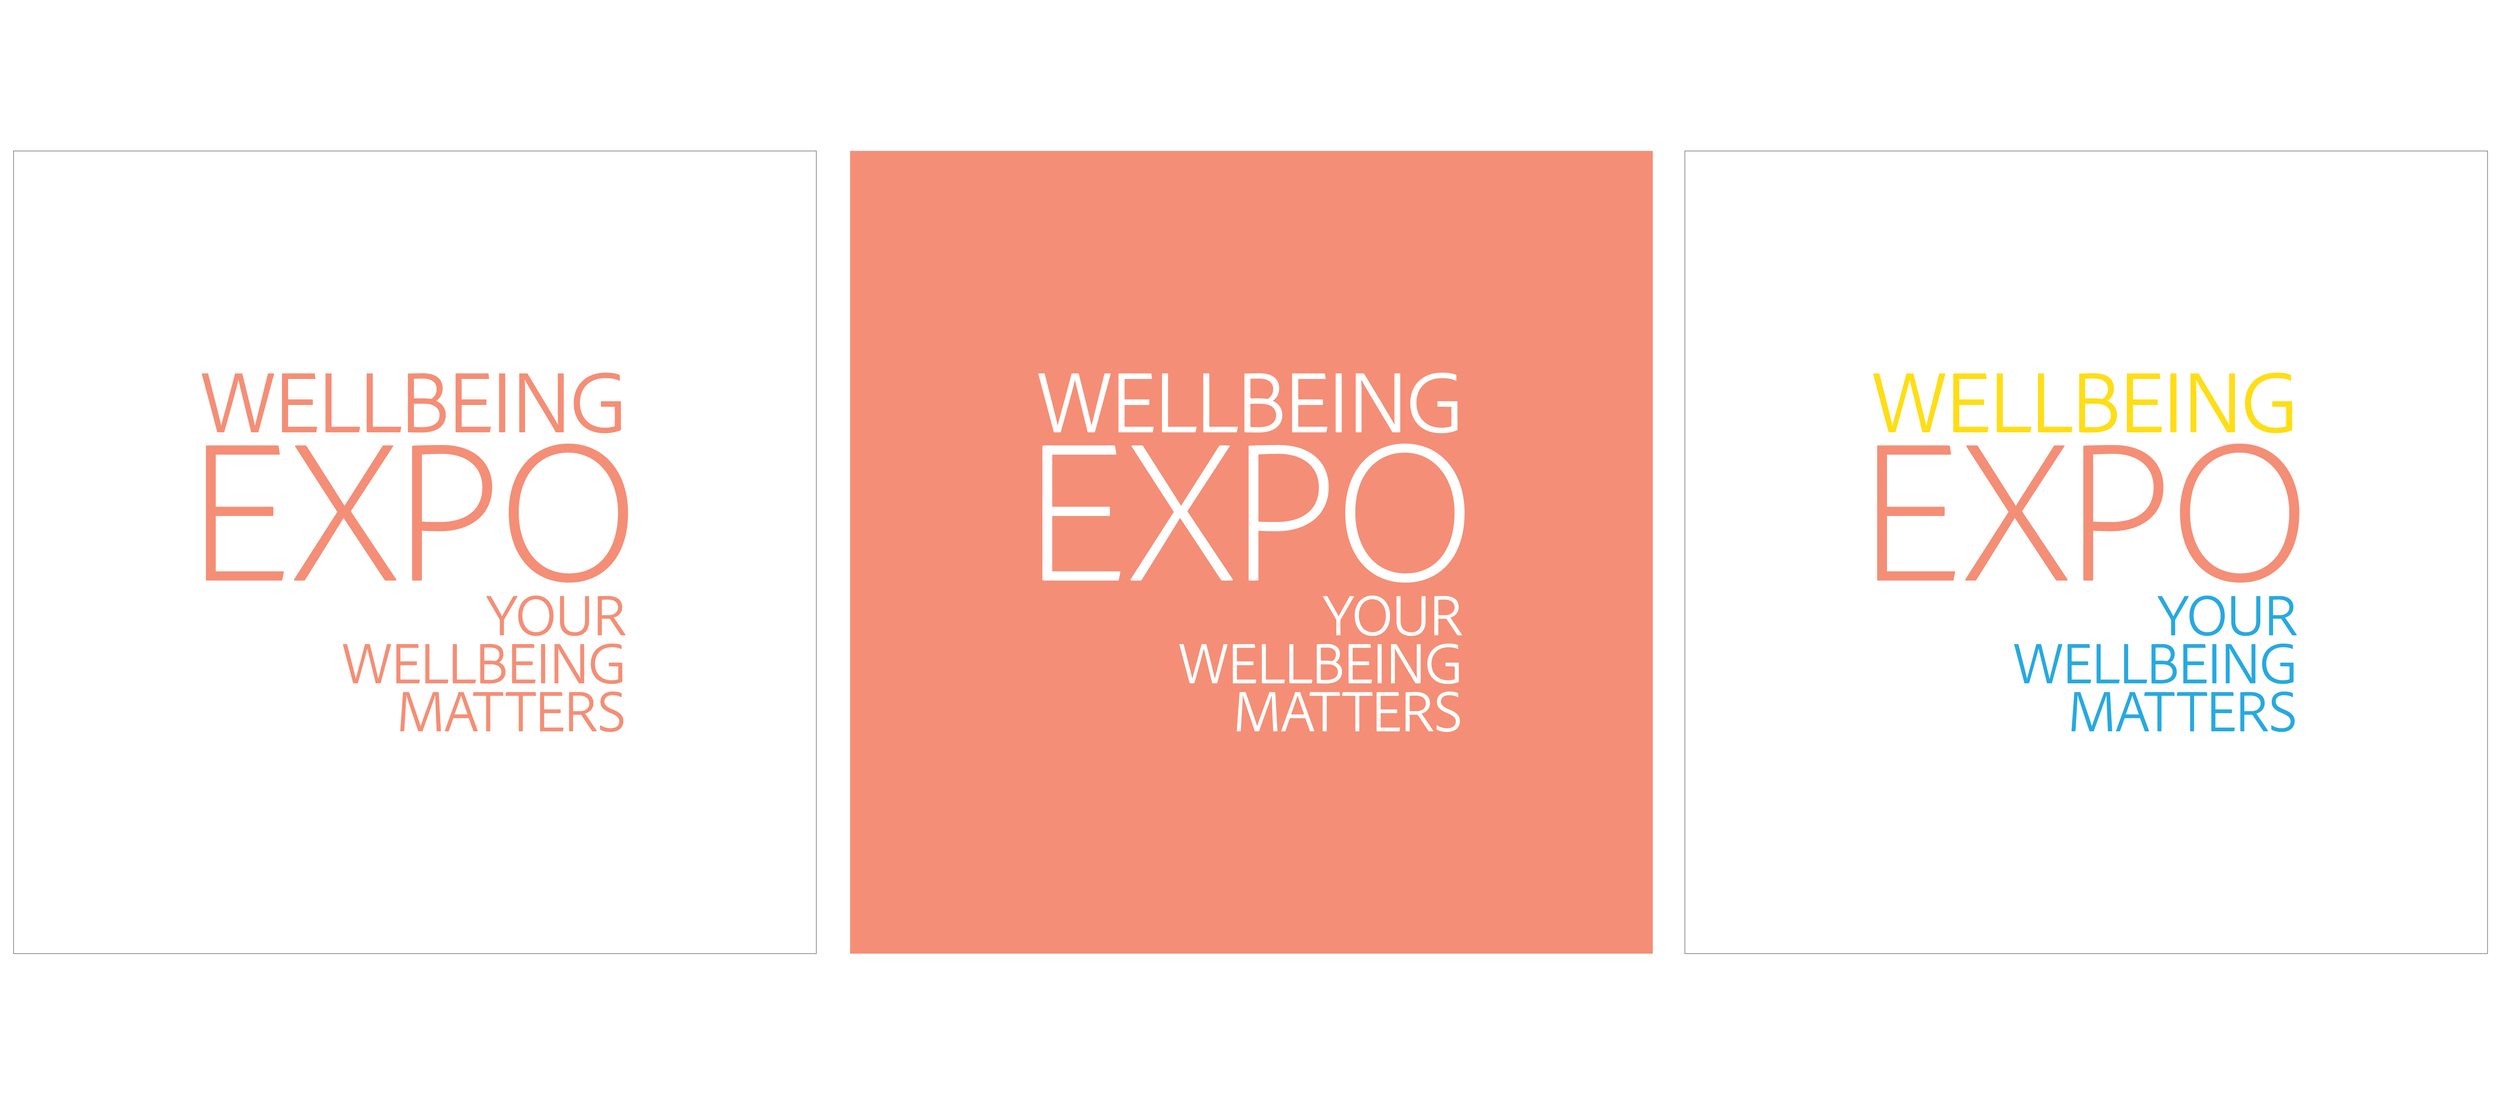 WELLBEING_05 @3x.png